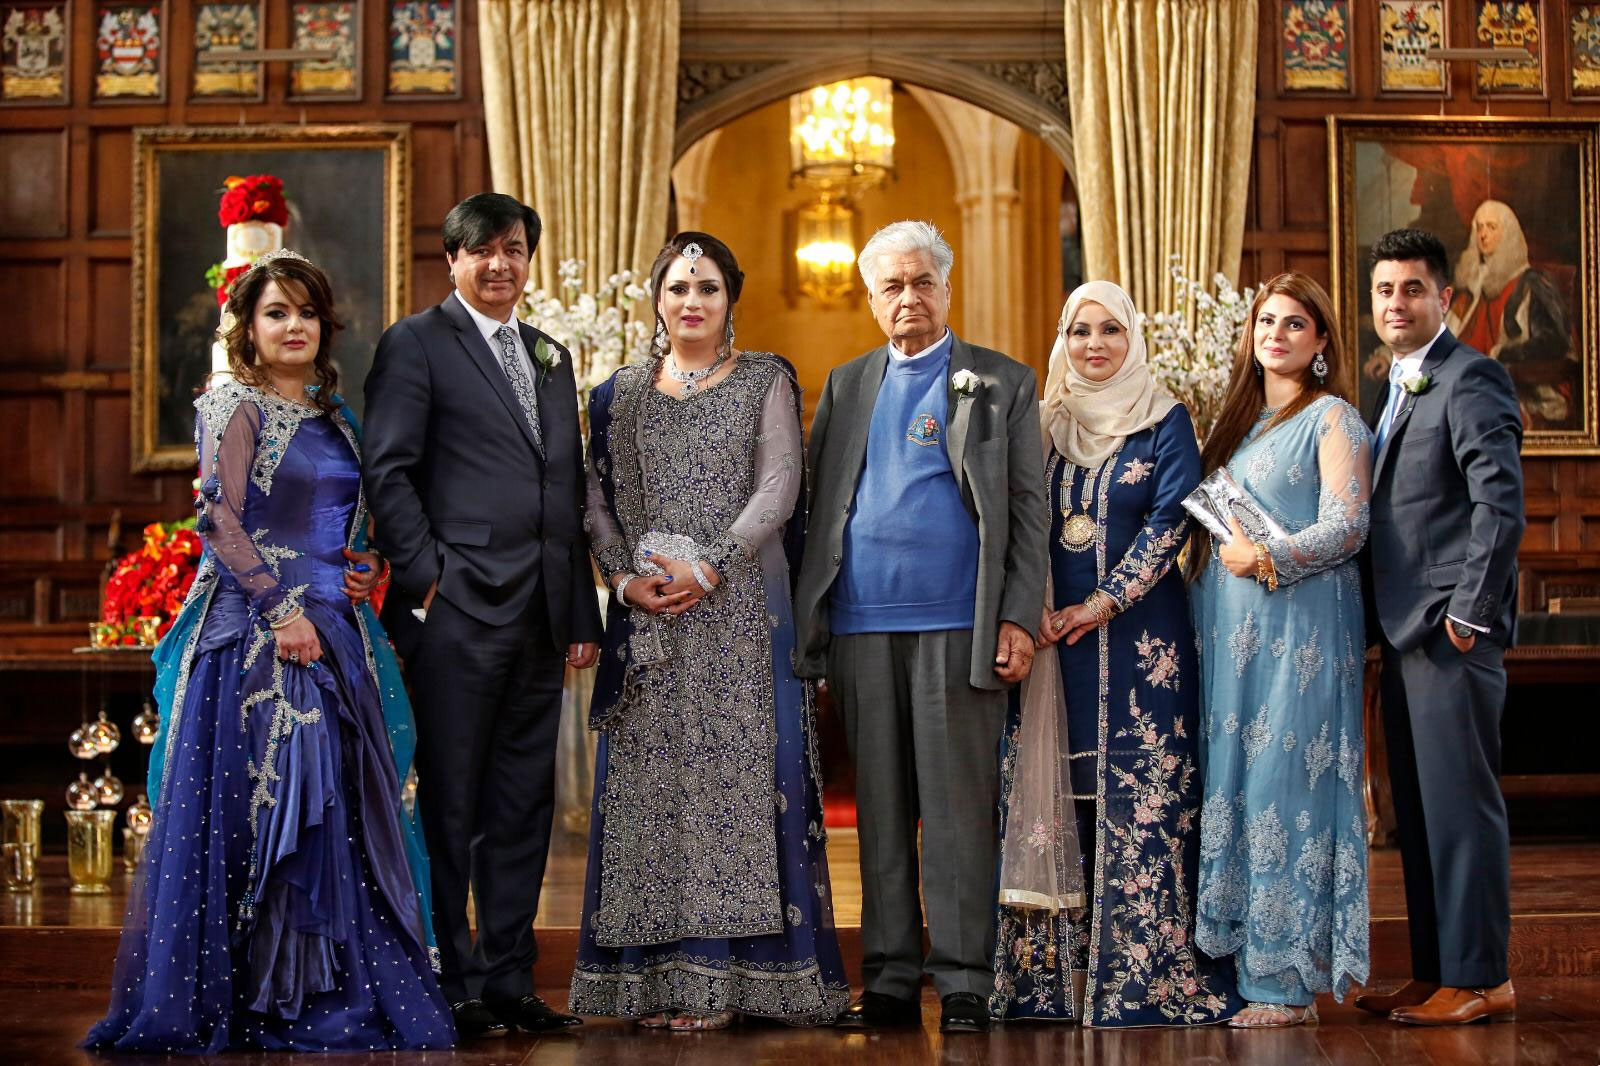 First Pakistani wedding at Lincoln's Inn in its 600 years